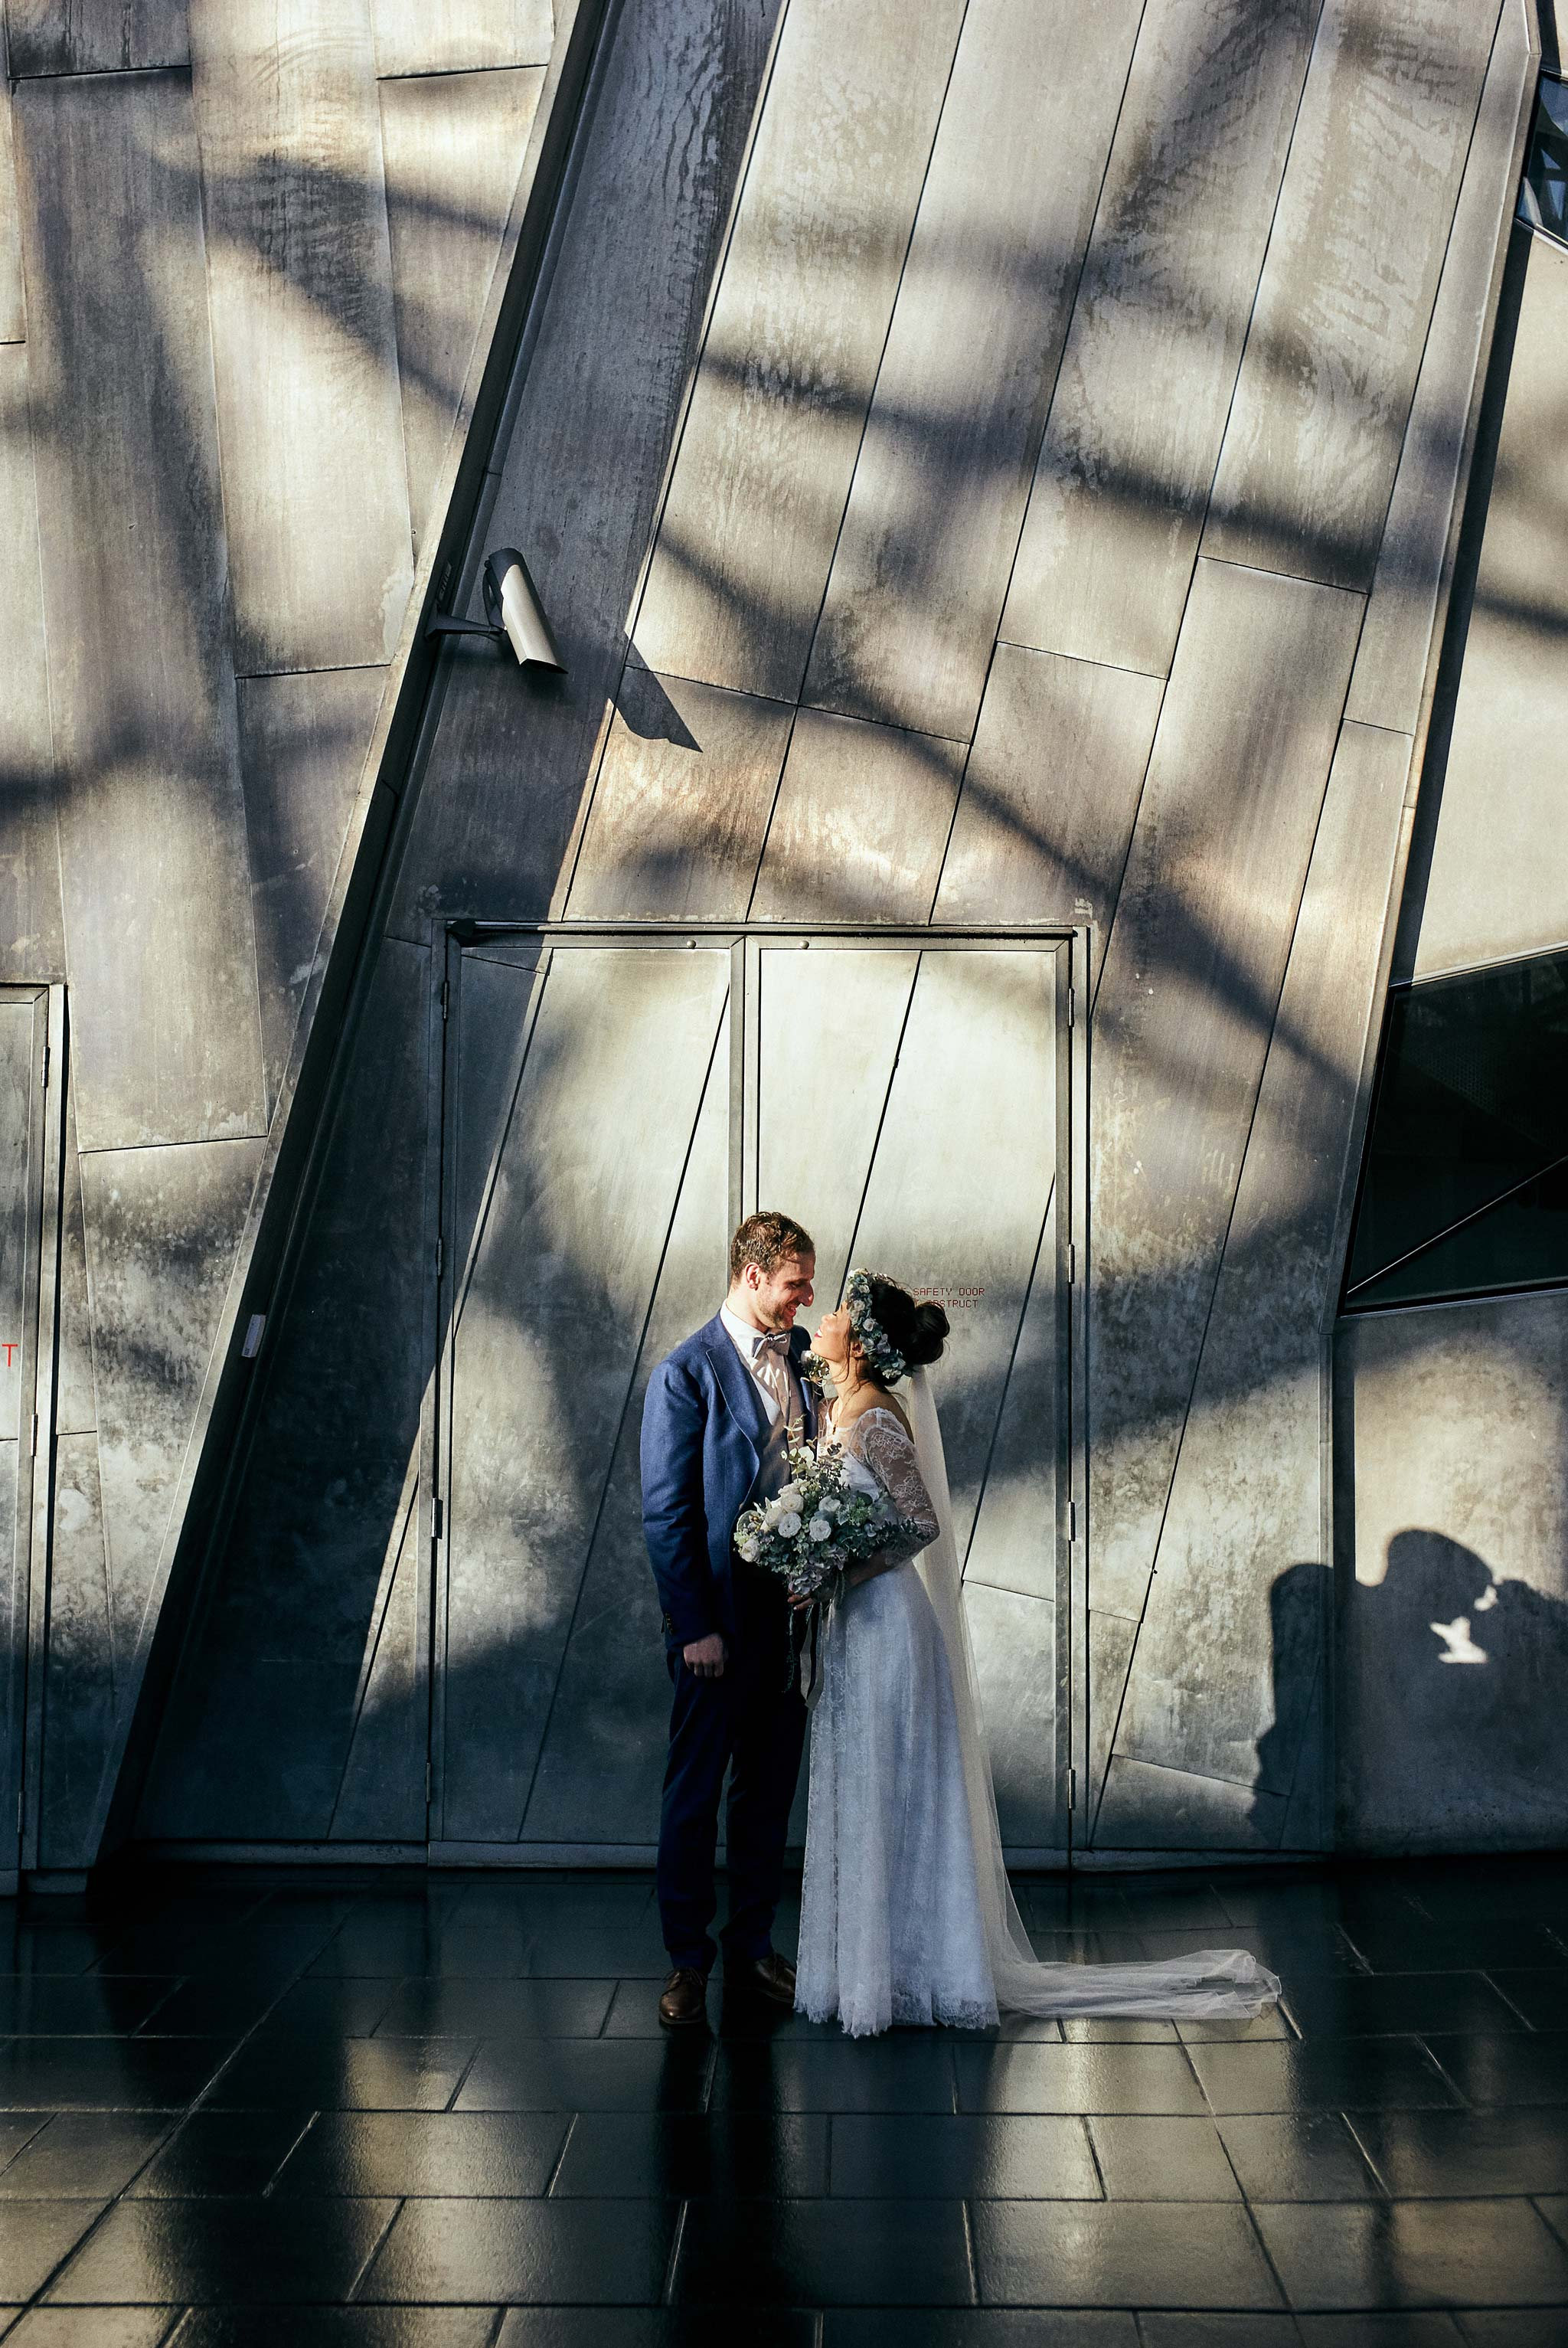 Melbourne-NGV-Triennial- Wedding-Federation-Square-portrait